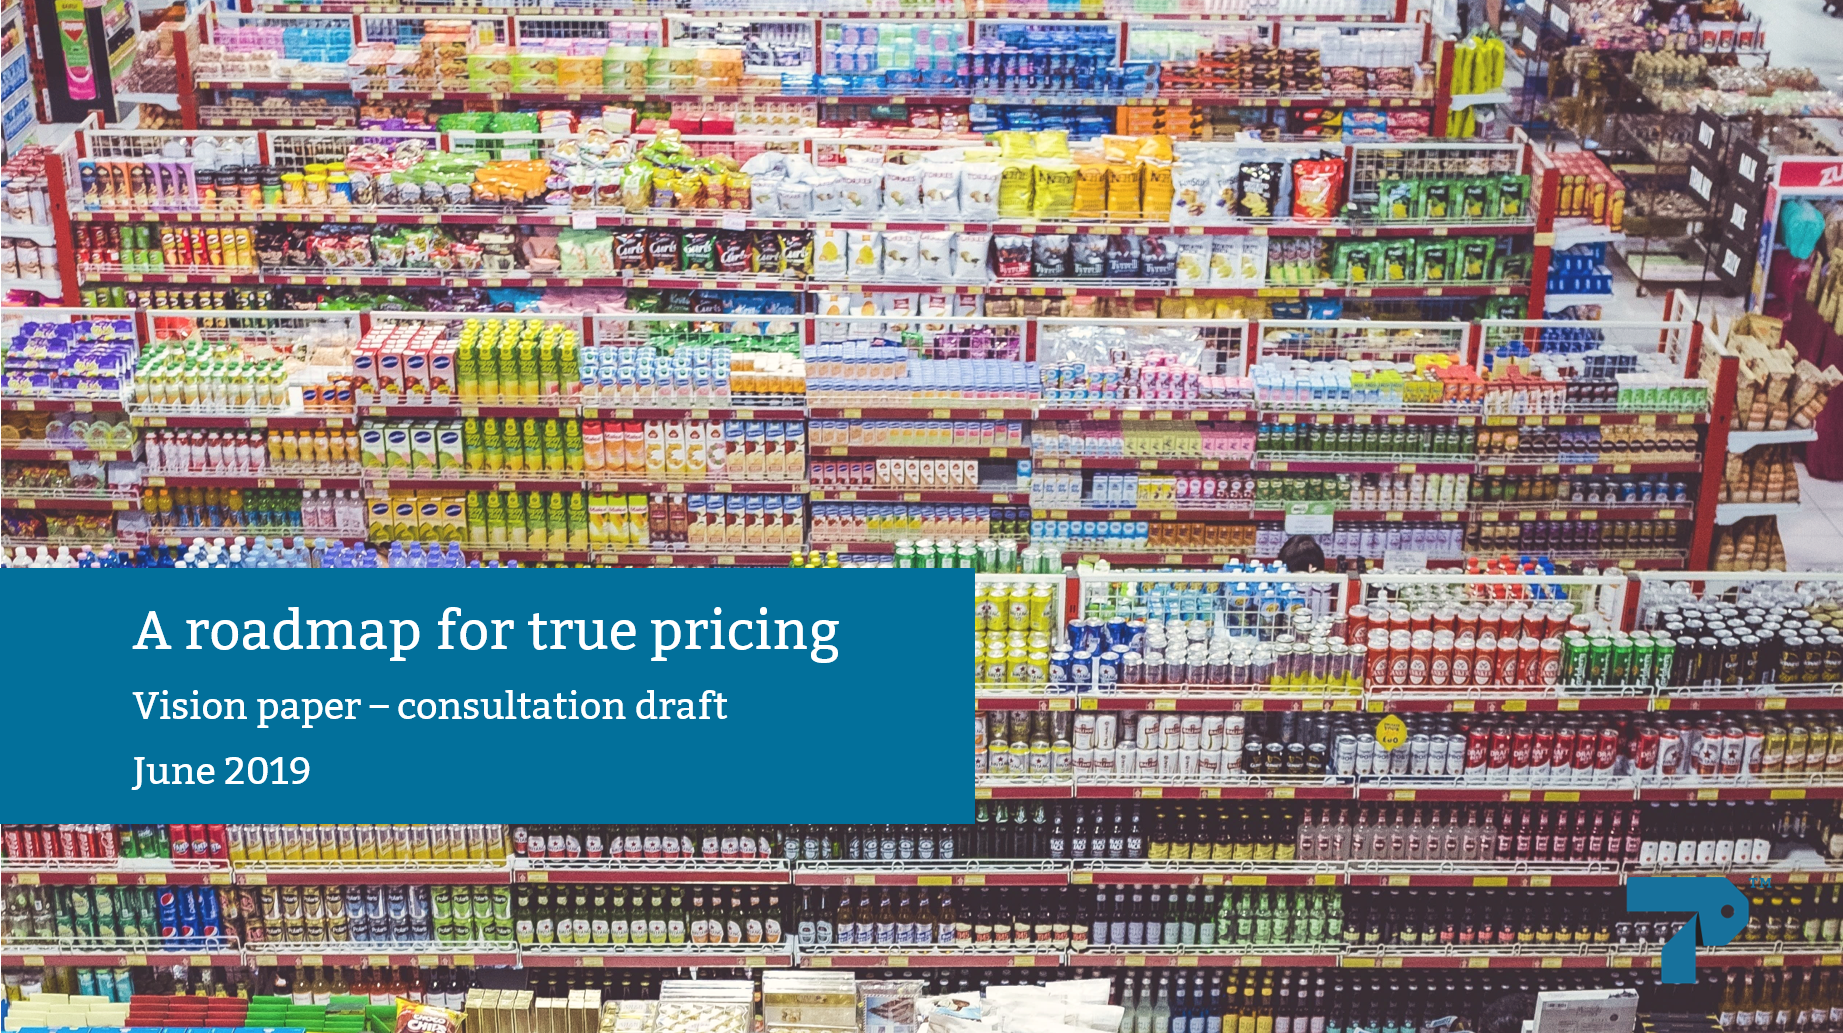 A roadmap for true pricing